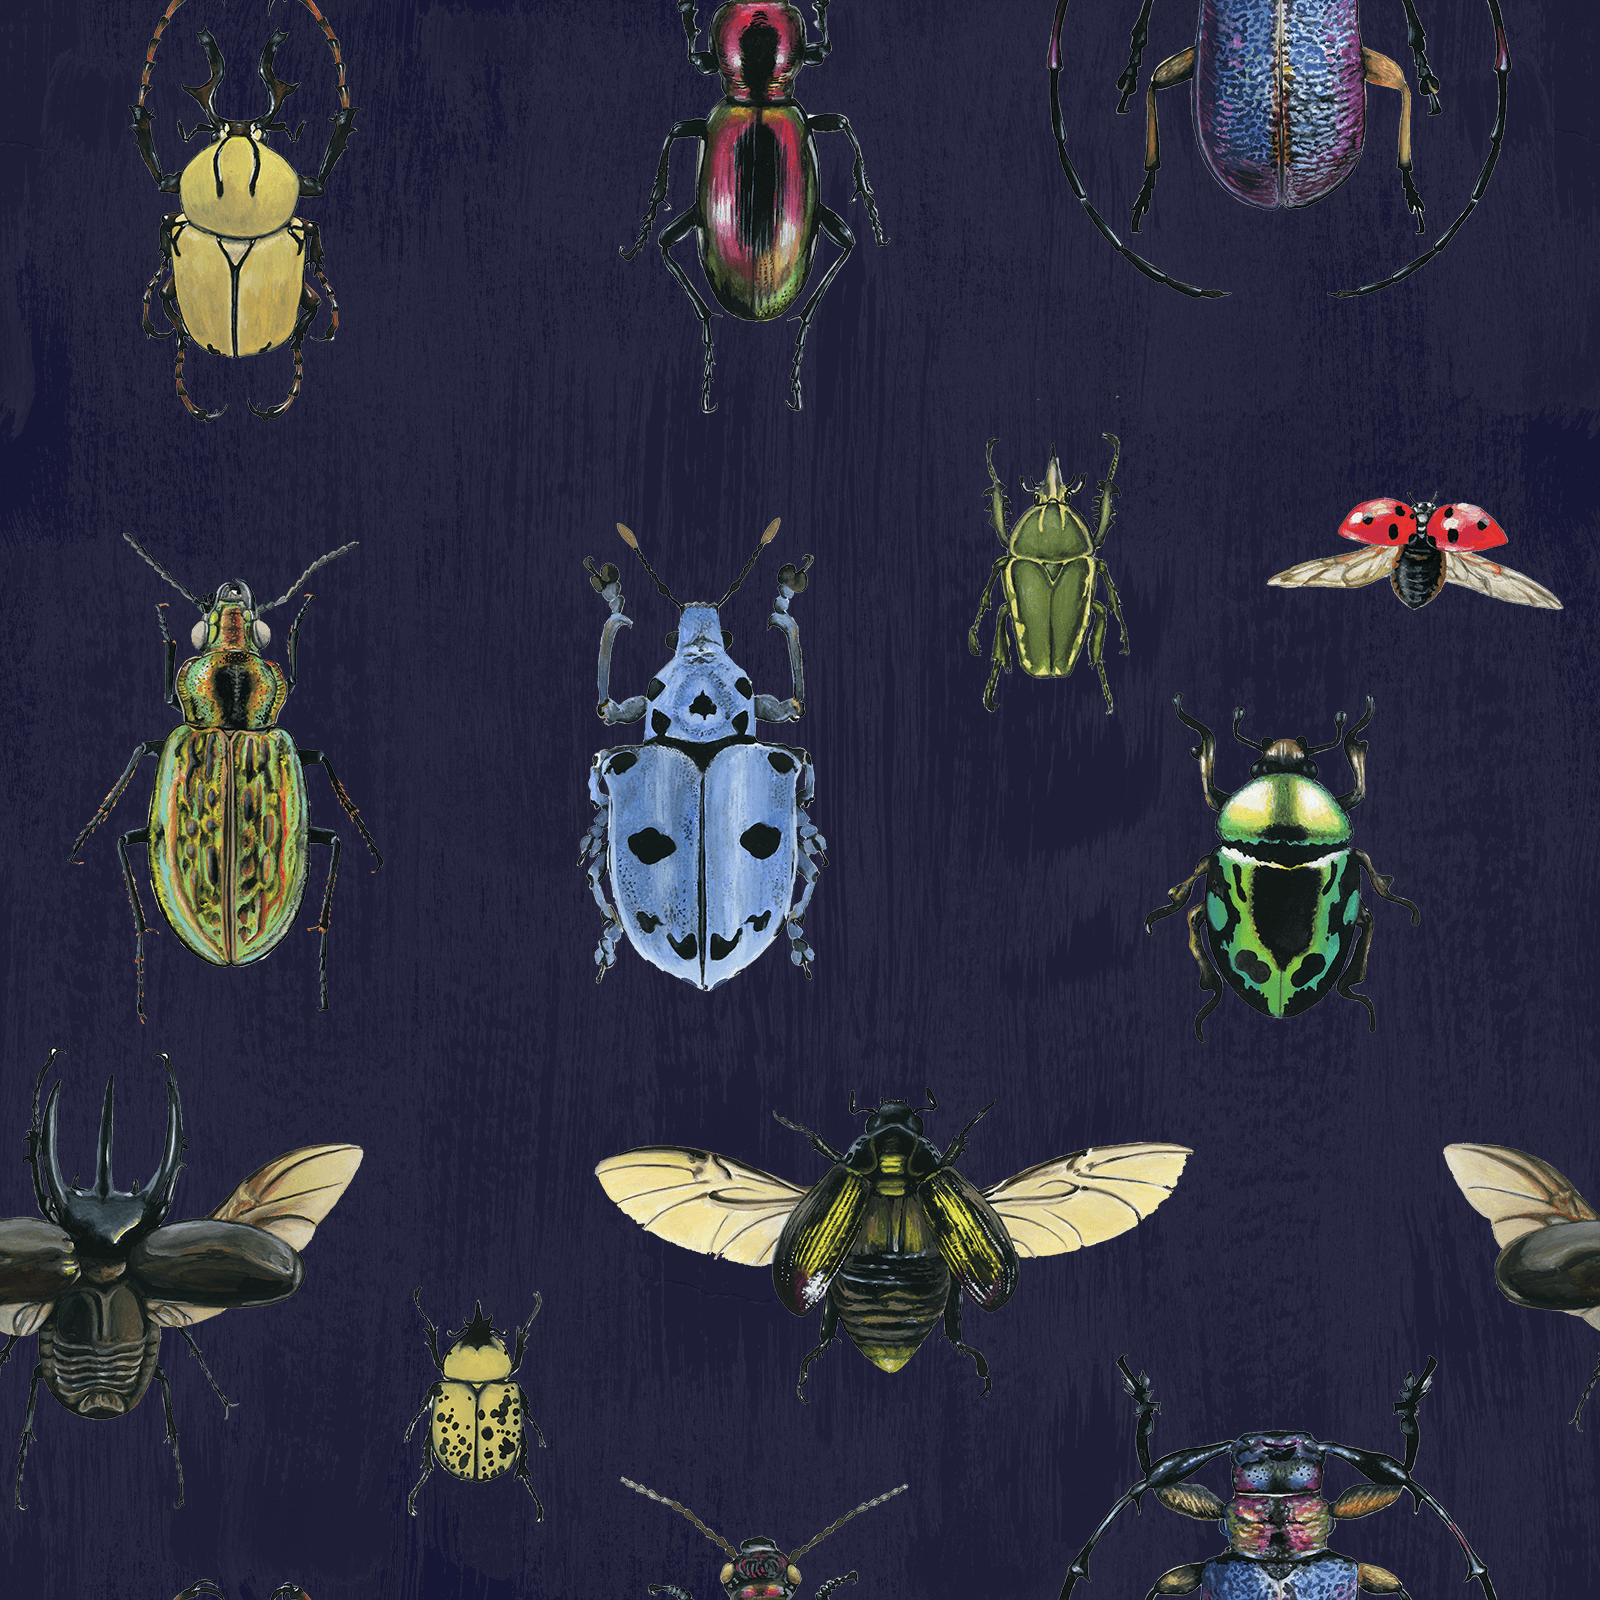 Beetles wallpaper navy texture.png